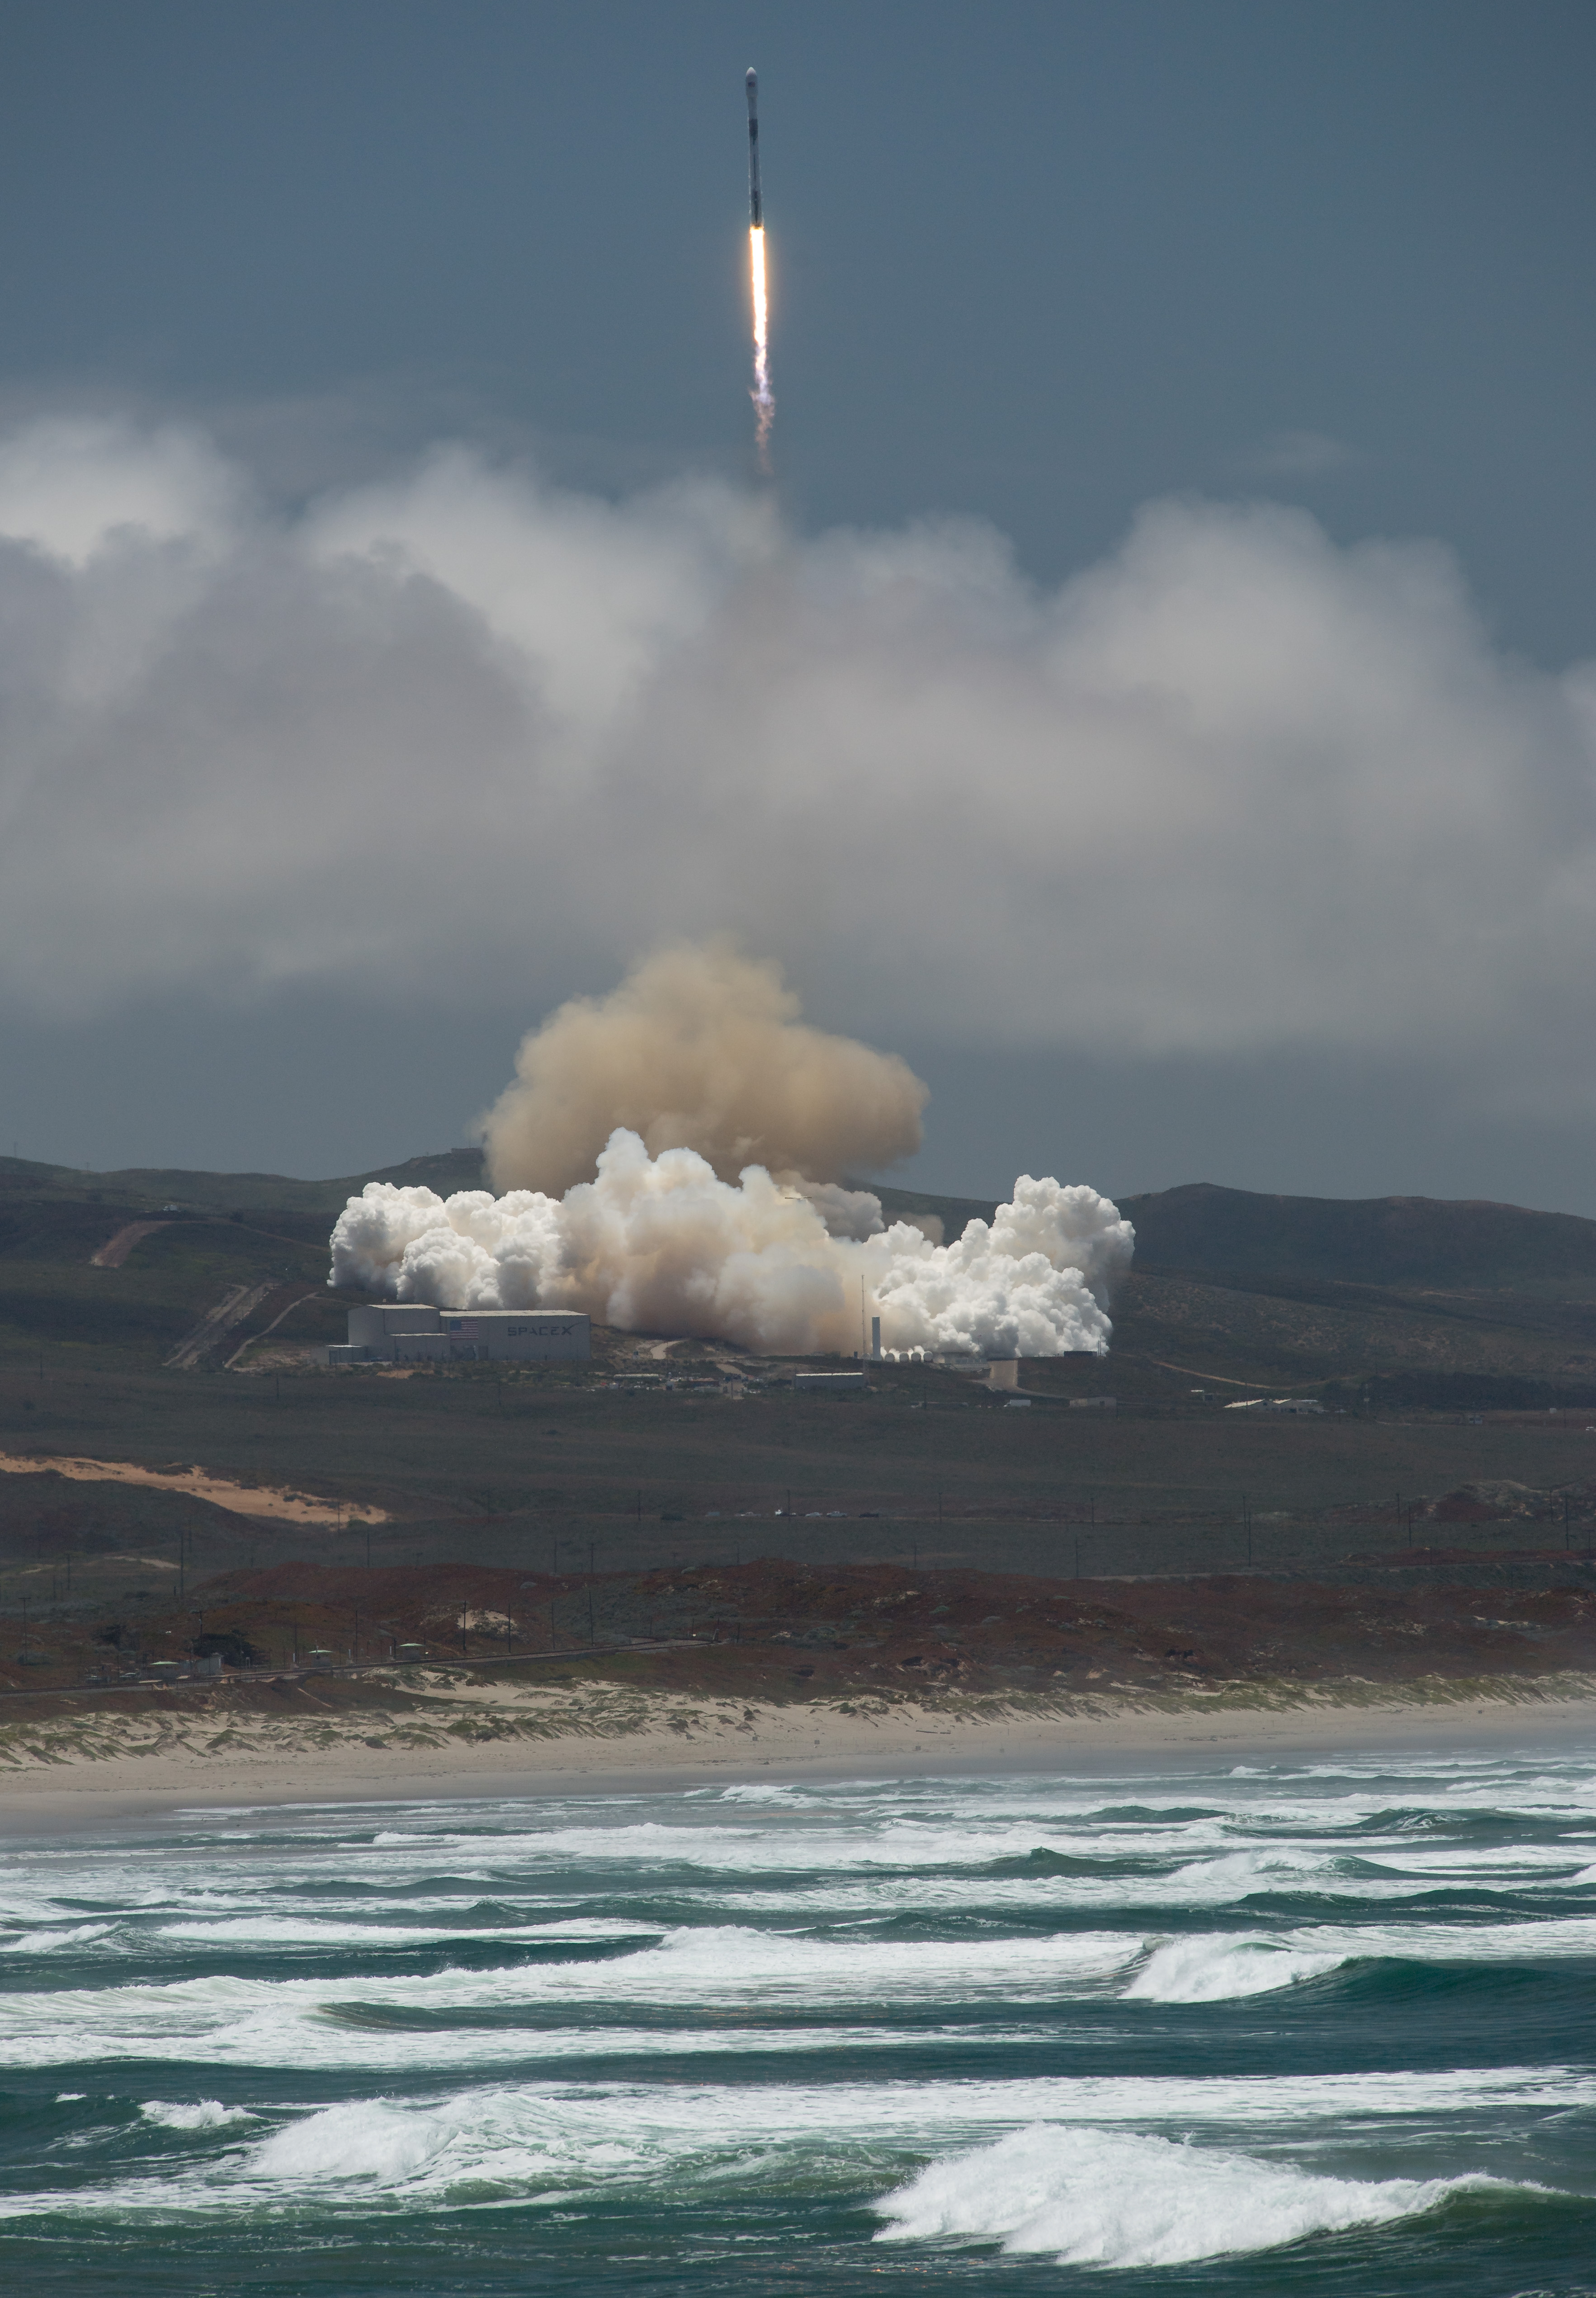 The rocket carrying GRACE-FO blasts off from the launch pad, with the ocean in the foreground.